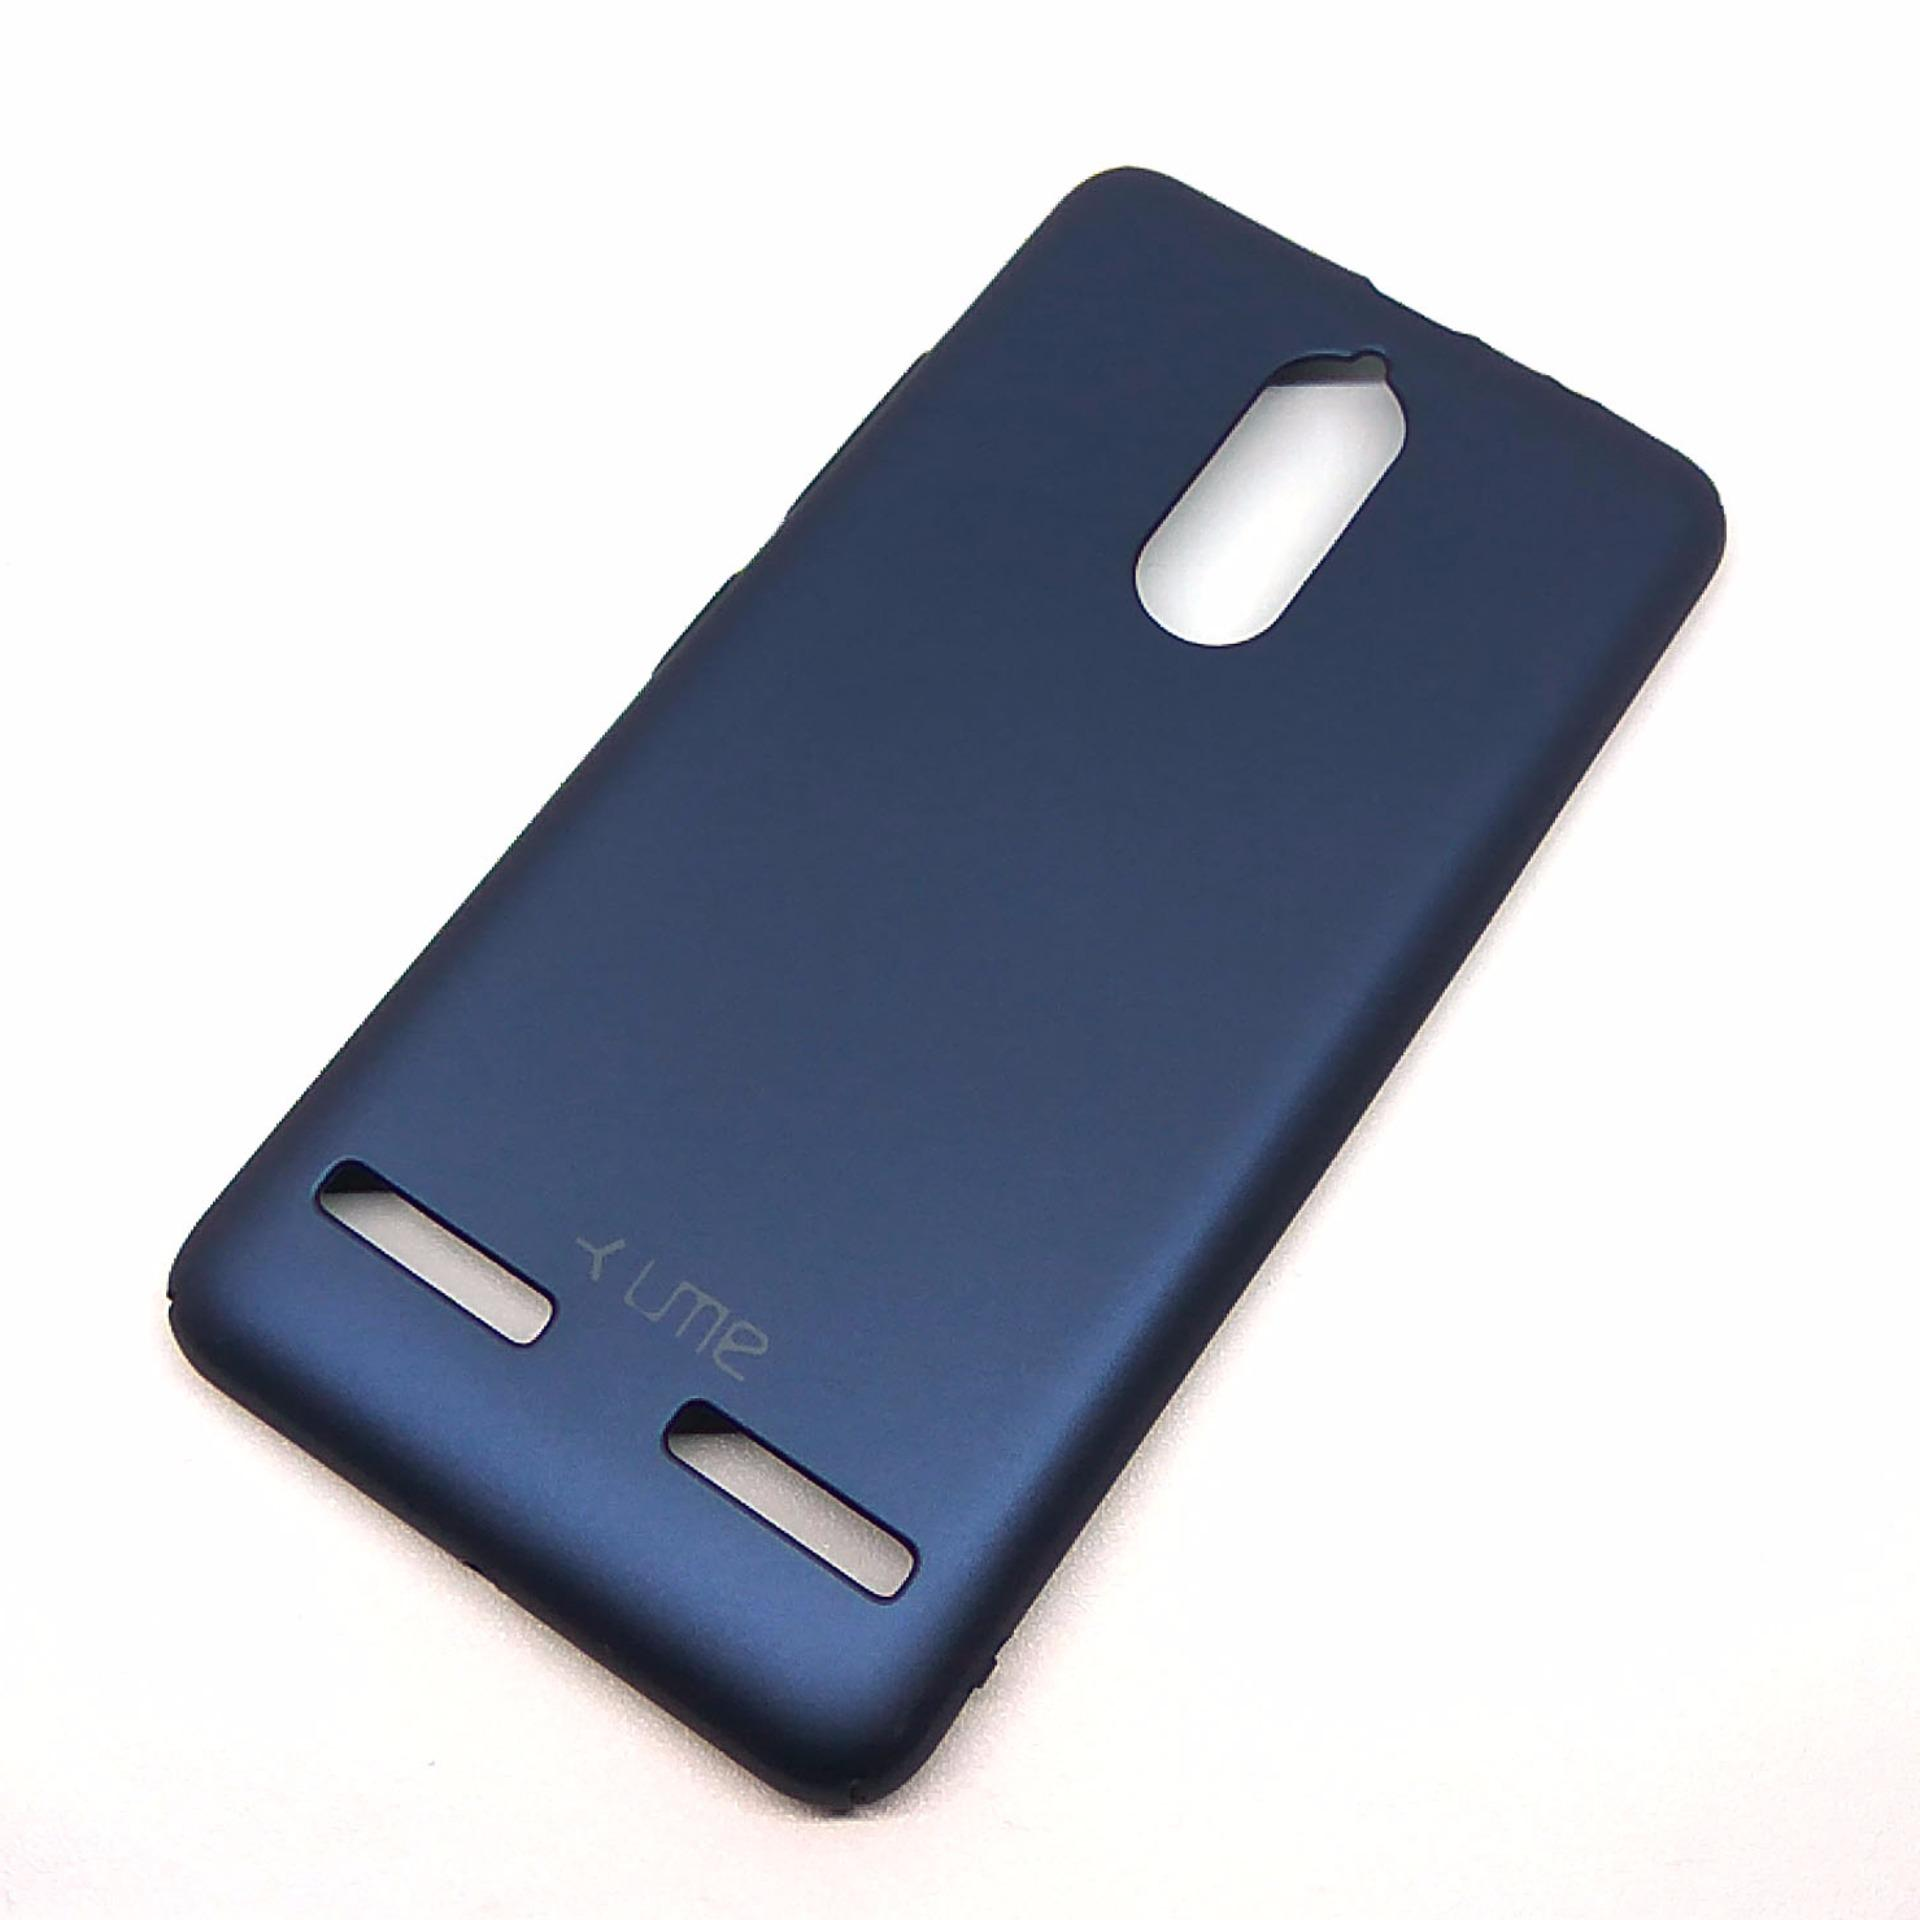 ... Hardcase Ume Eco Doff Color untuk Lenovo K6 Power Casing Ultra slimHard case - Hitam ...